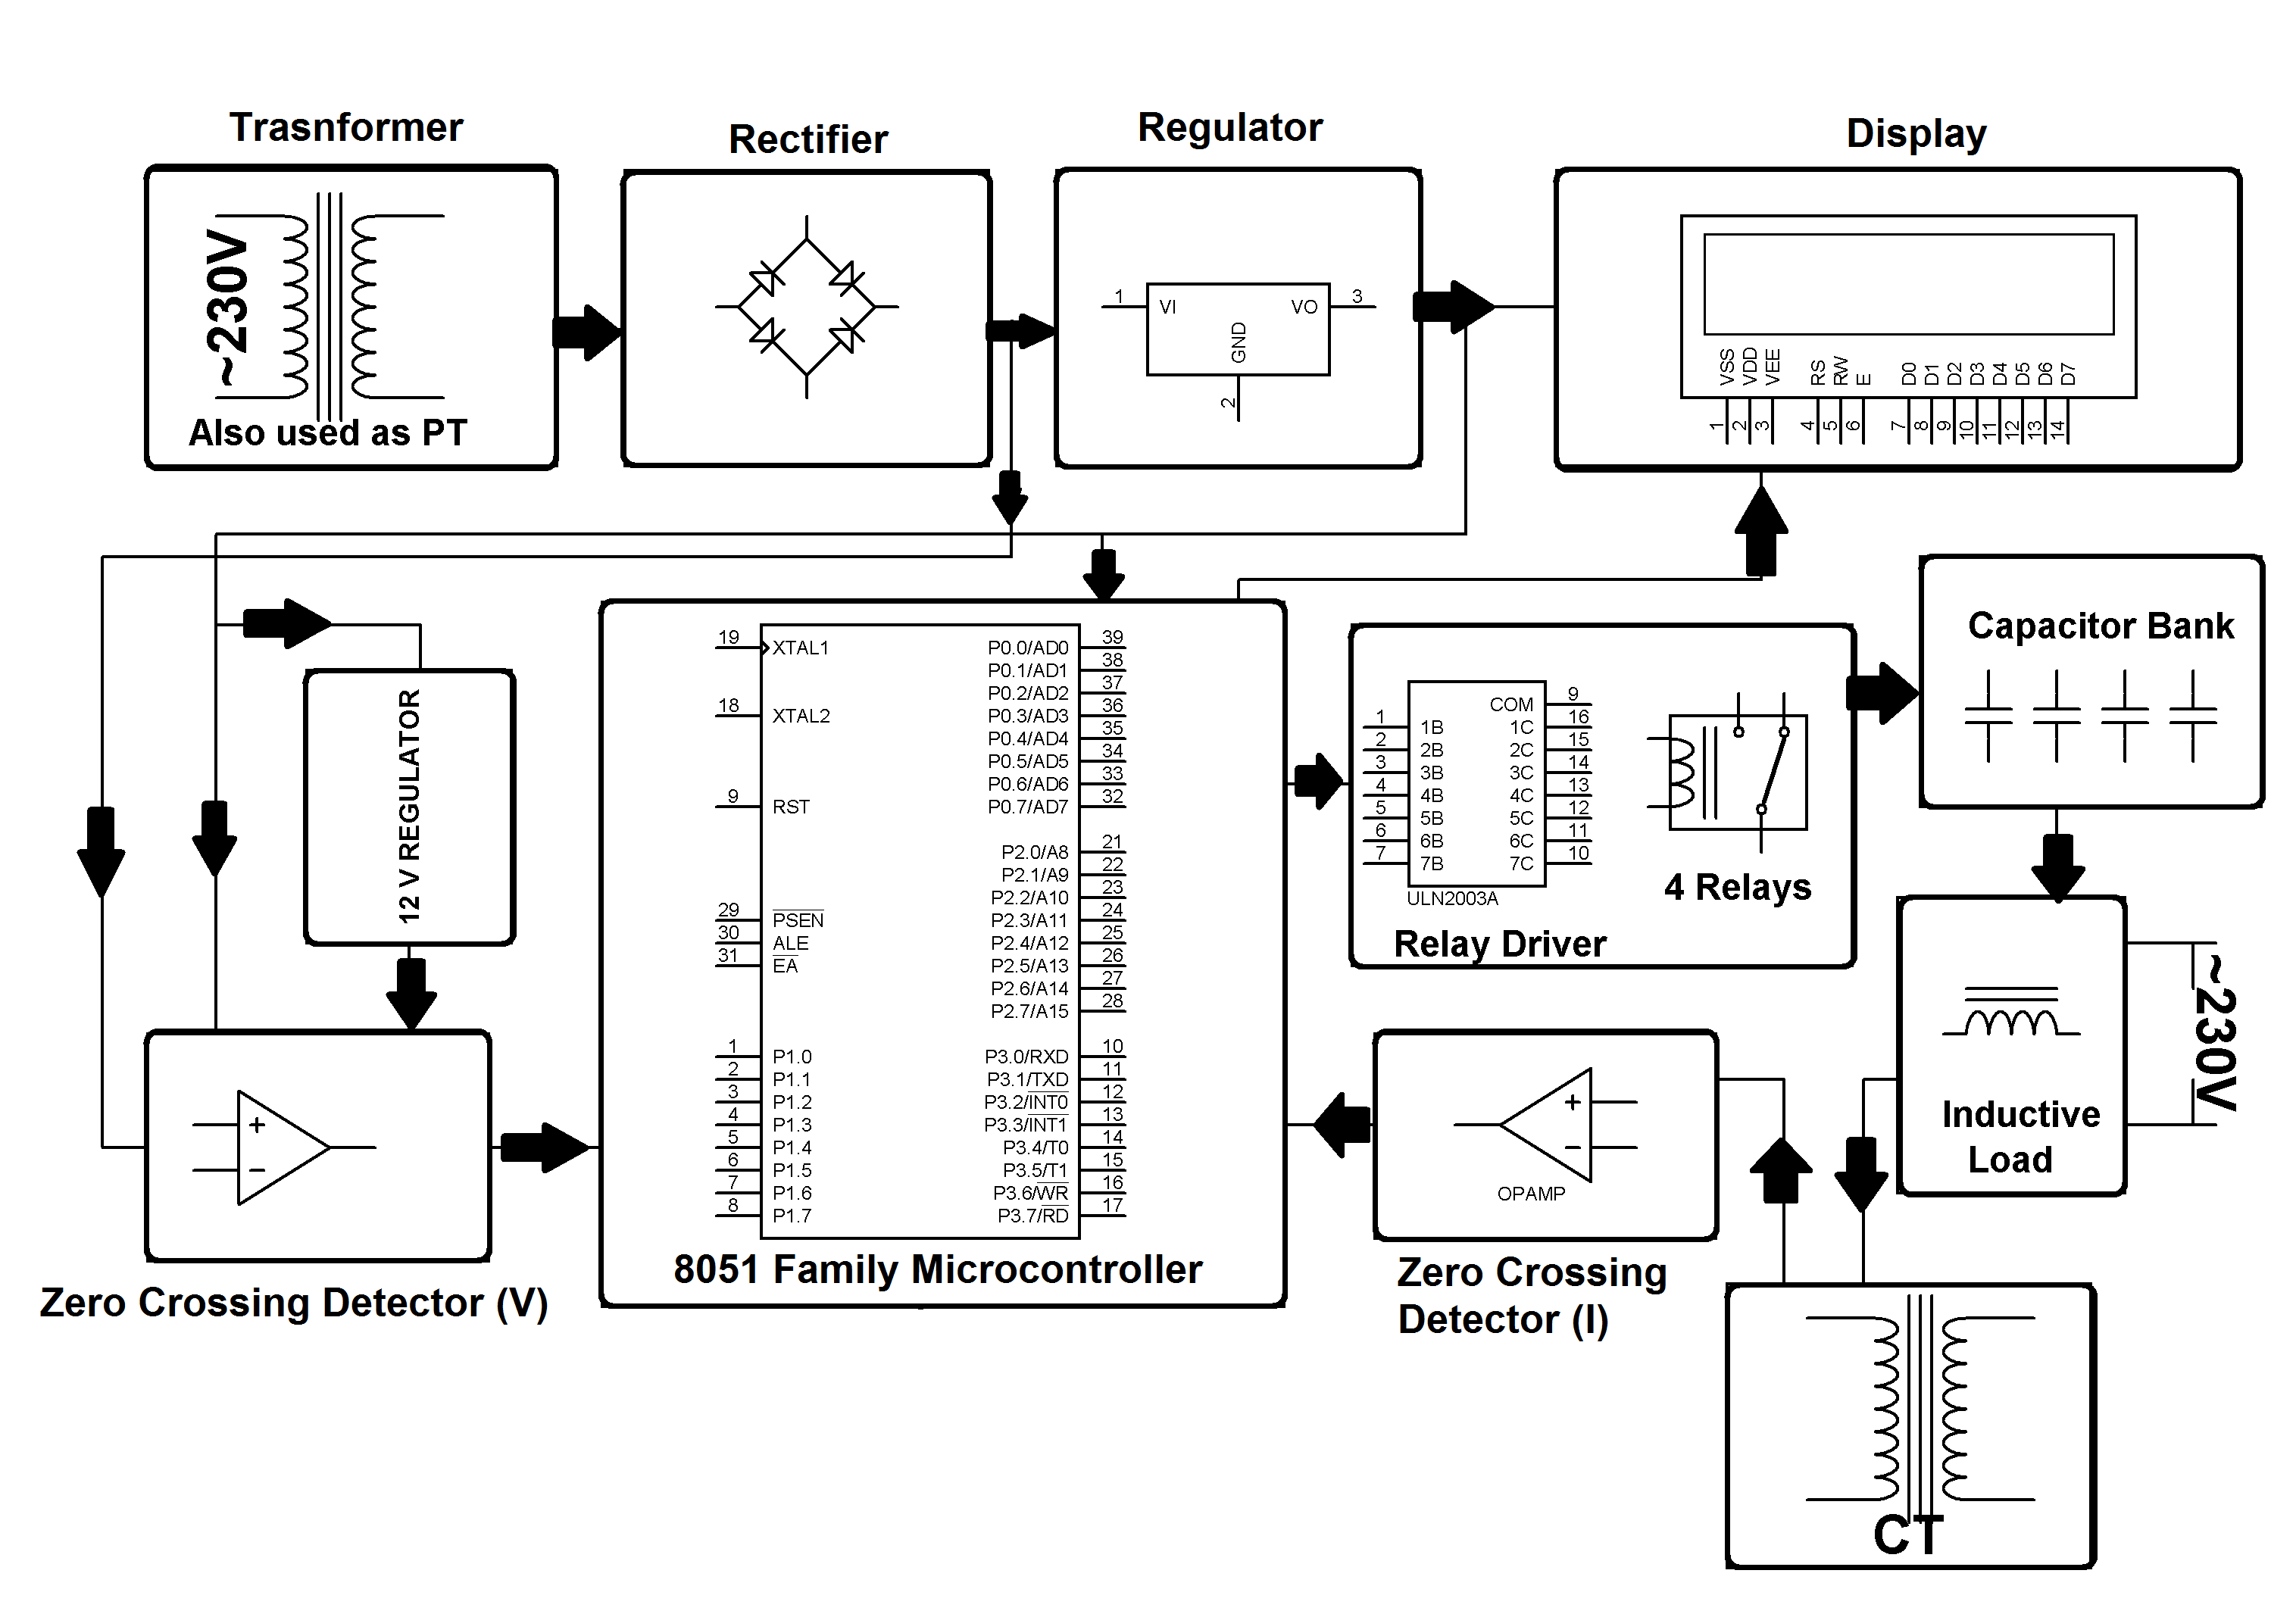 Commercial Power Saver Project Electronics And Communication Engineering Electronic Block Diagram Of An Error Occurred